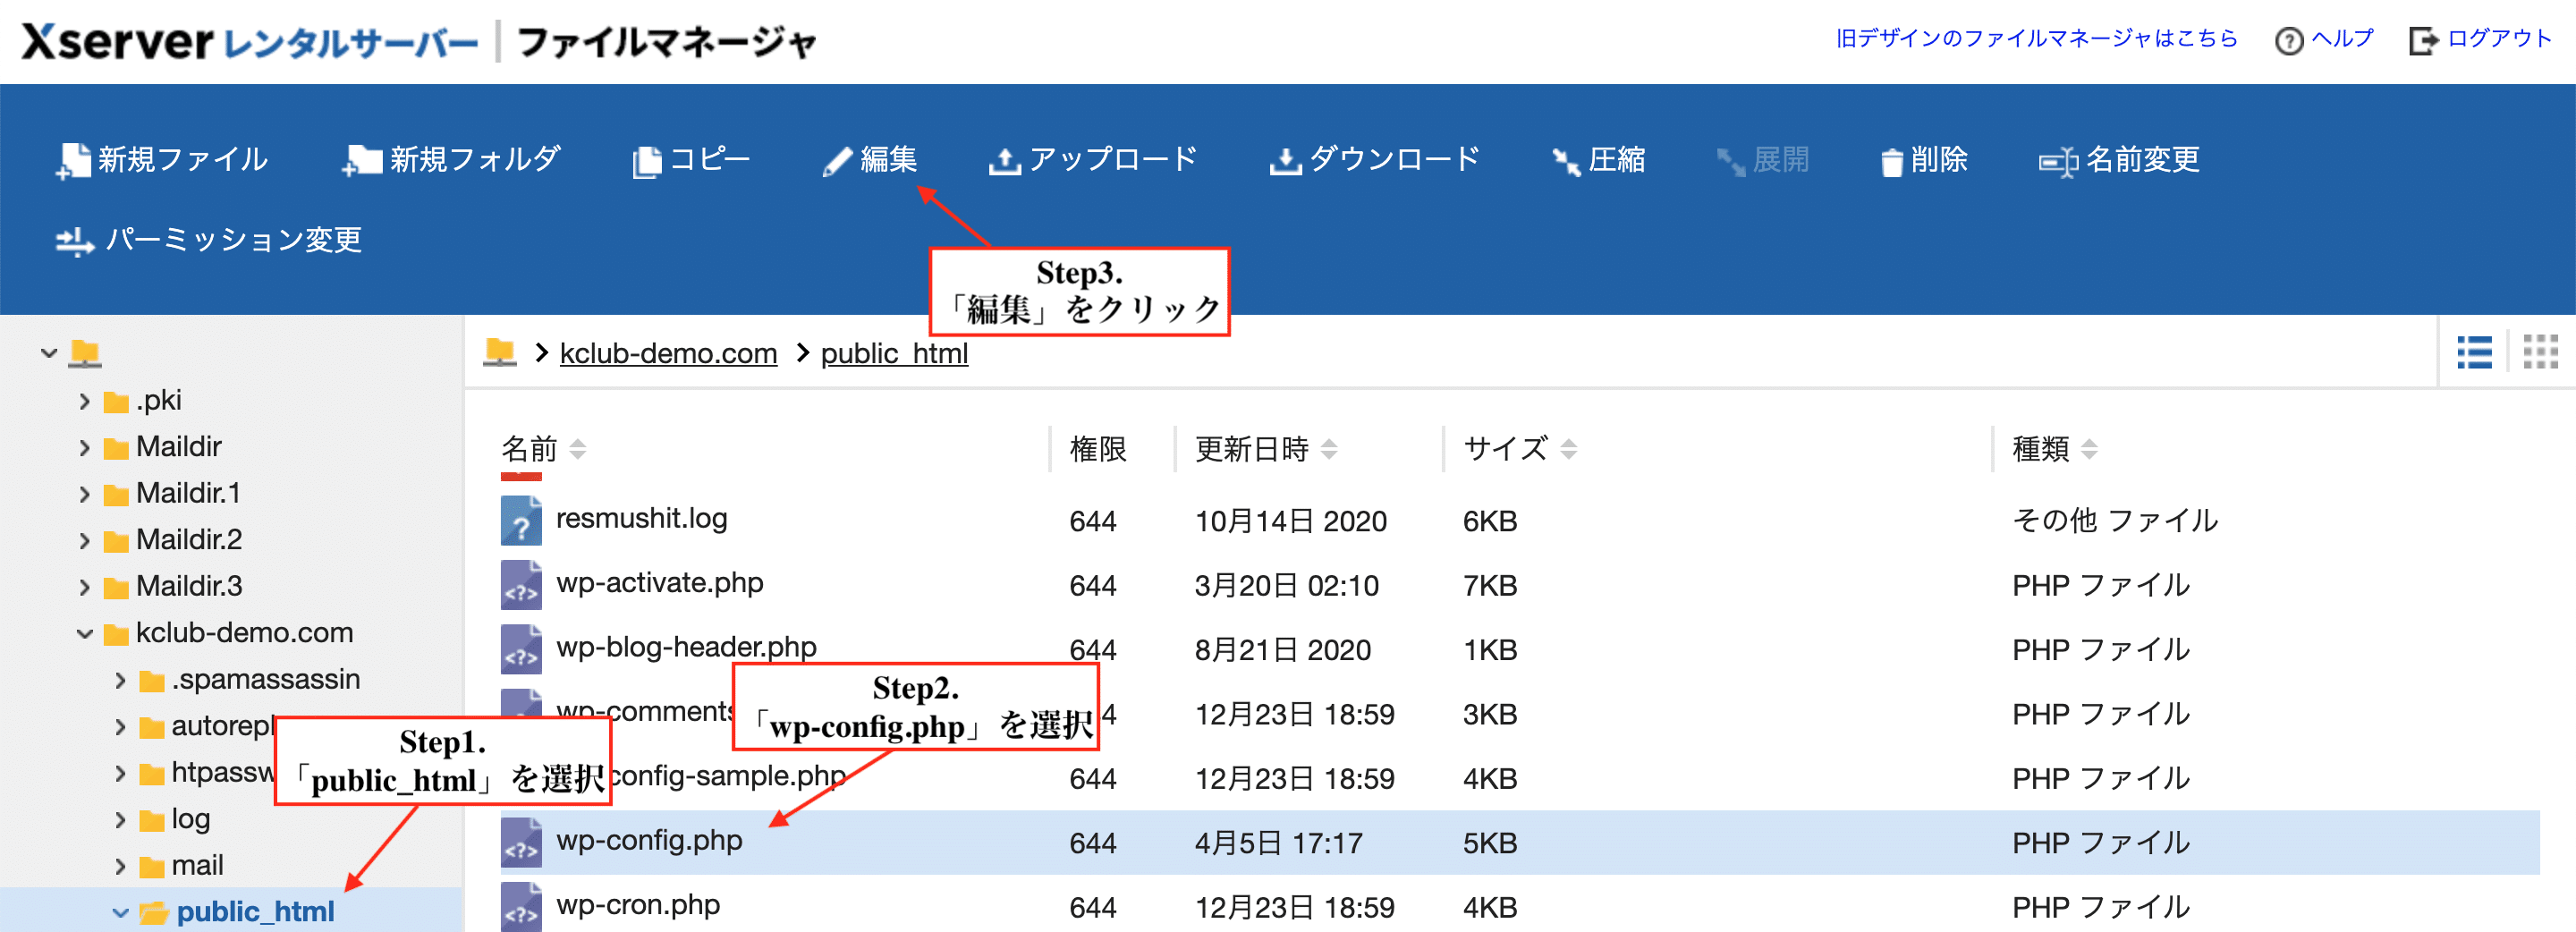 wp config phpの「編集」